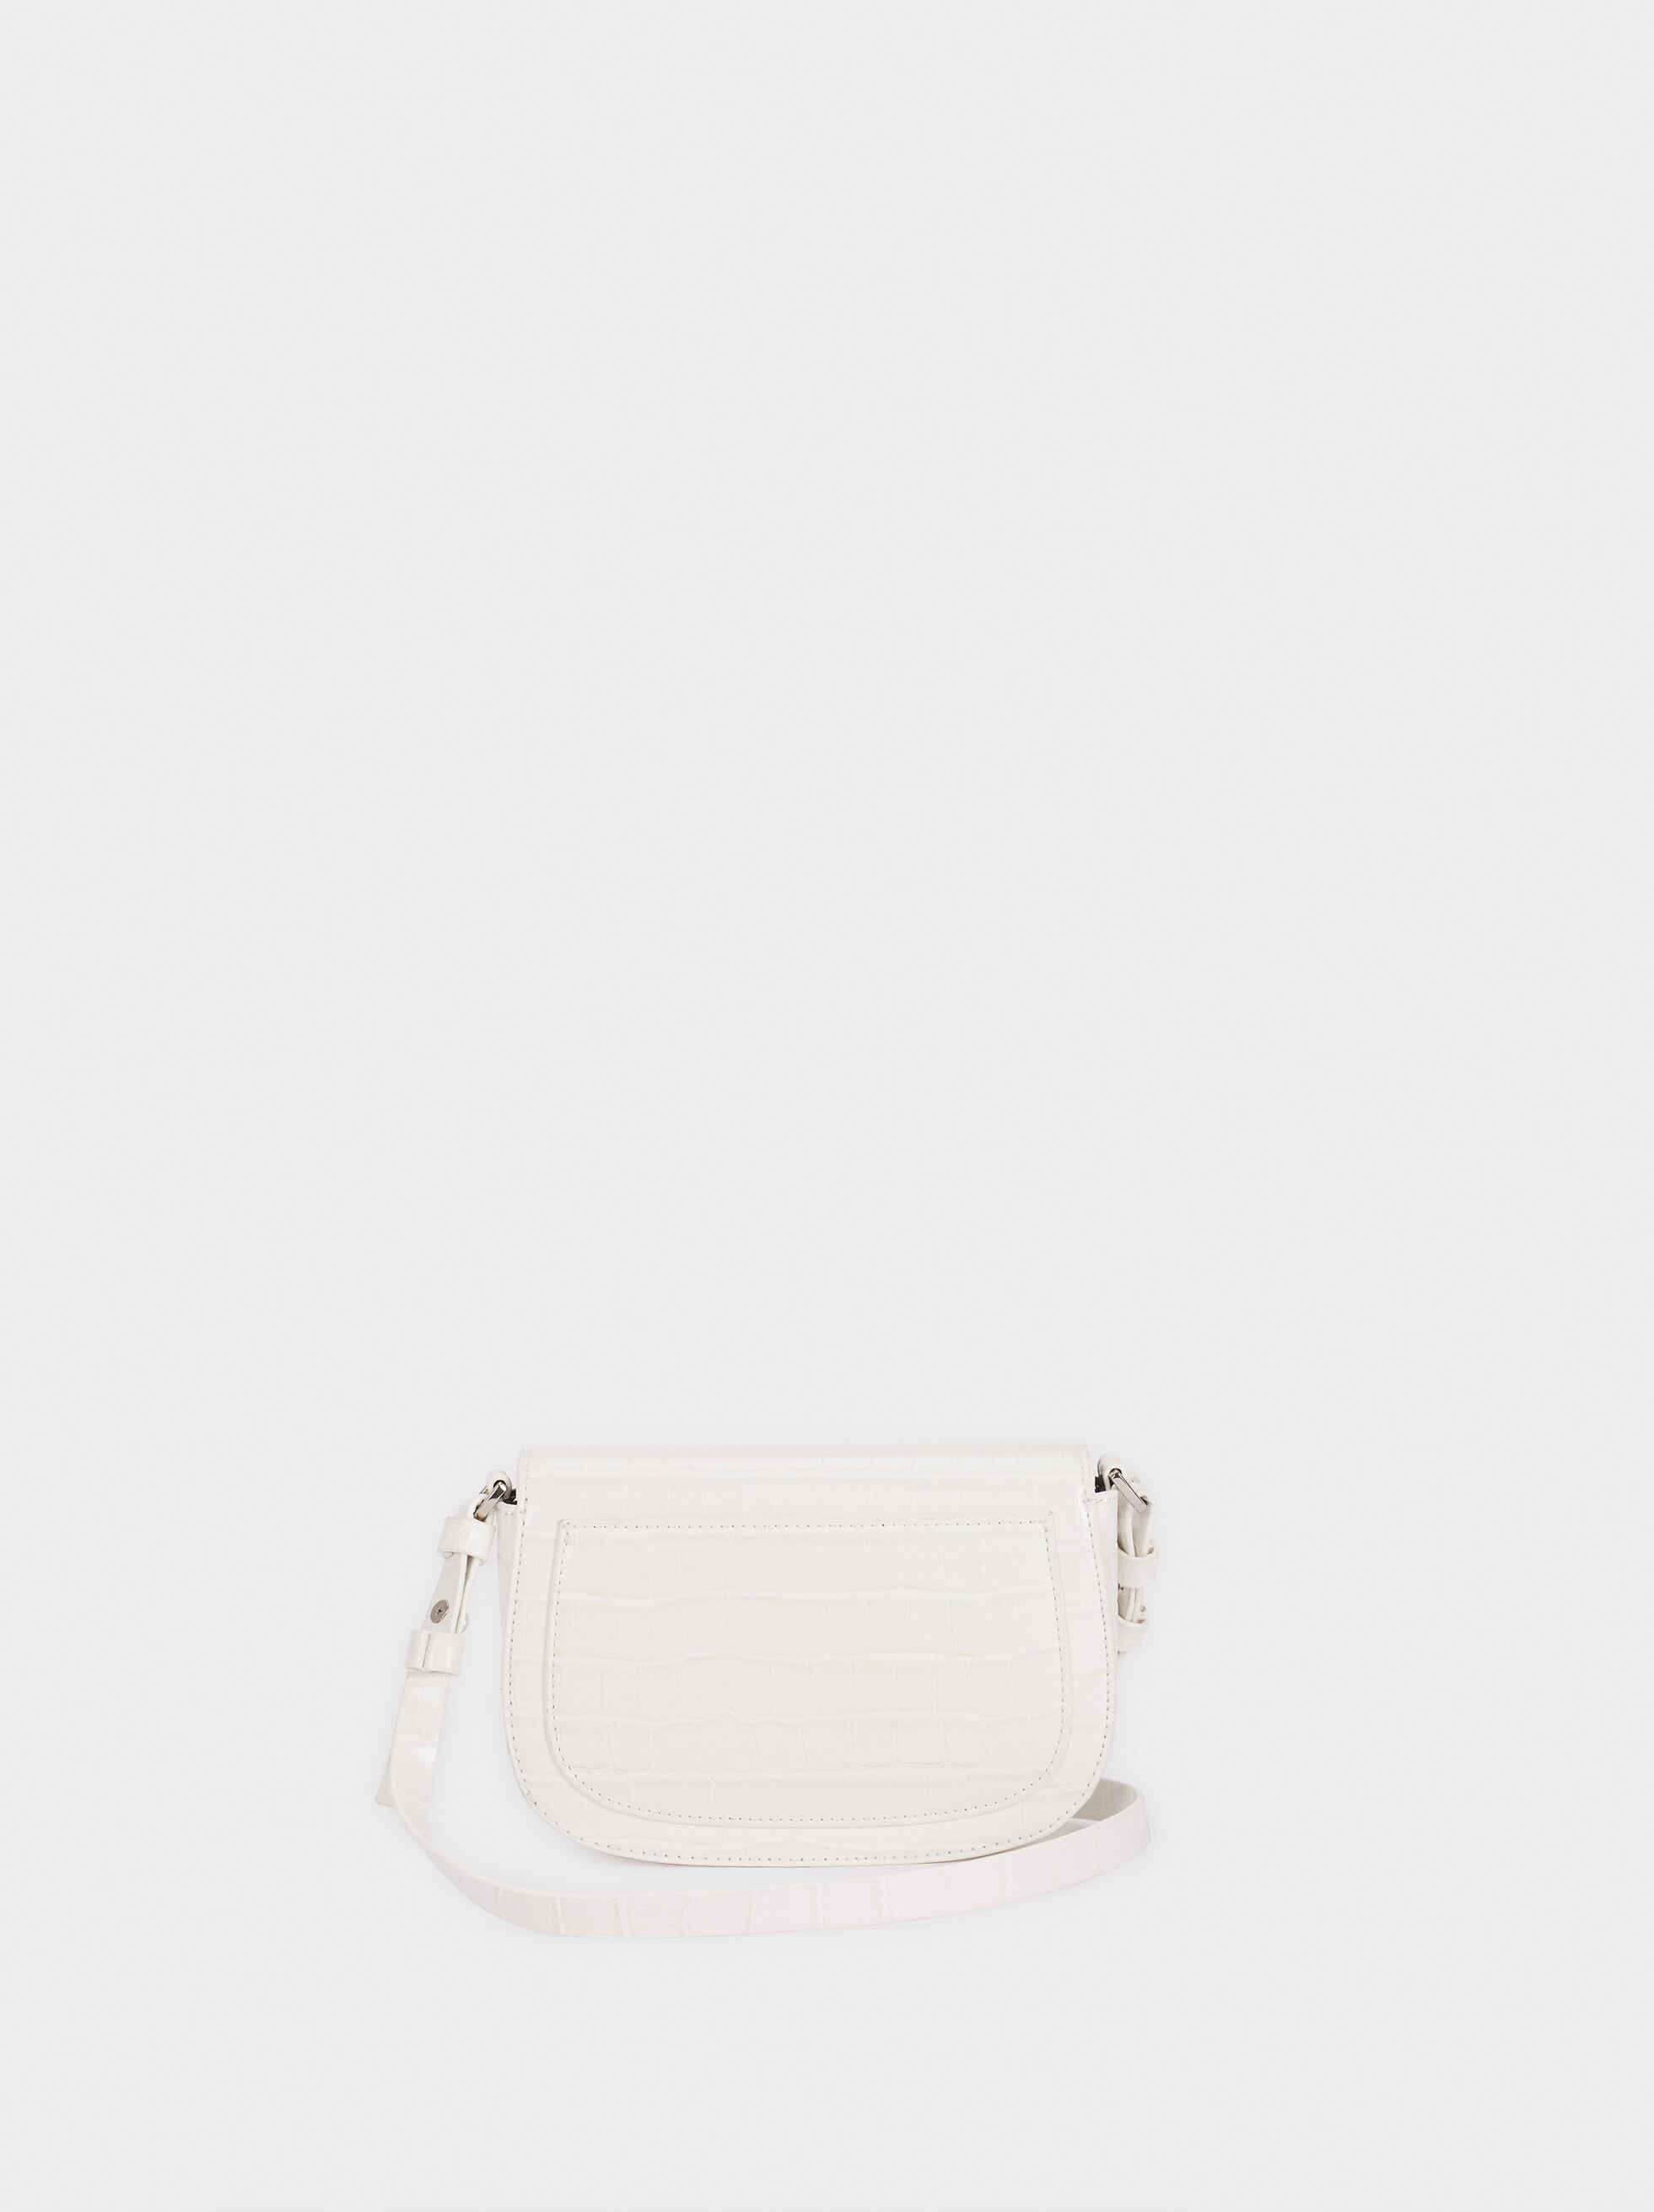 Animal Embossed Crossbody Bag, White, hi-res